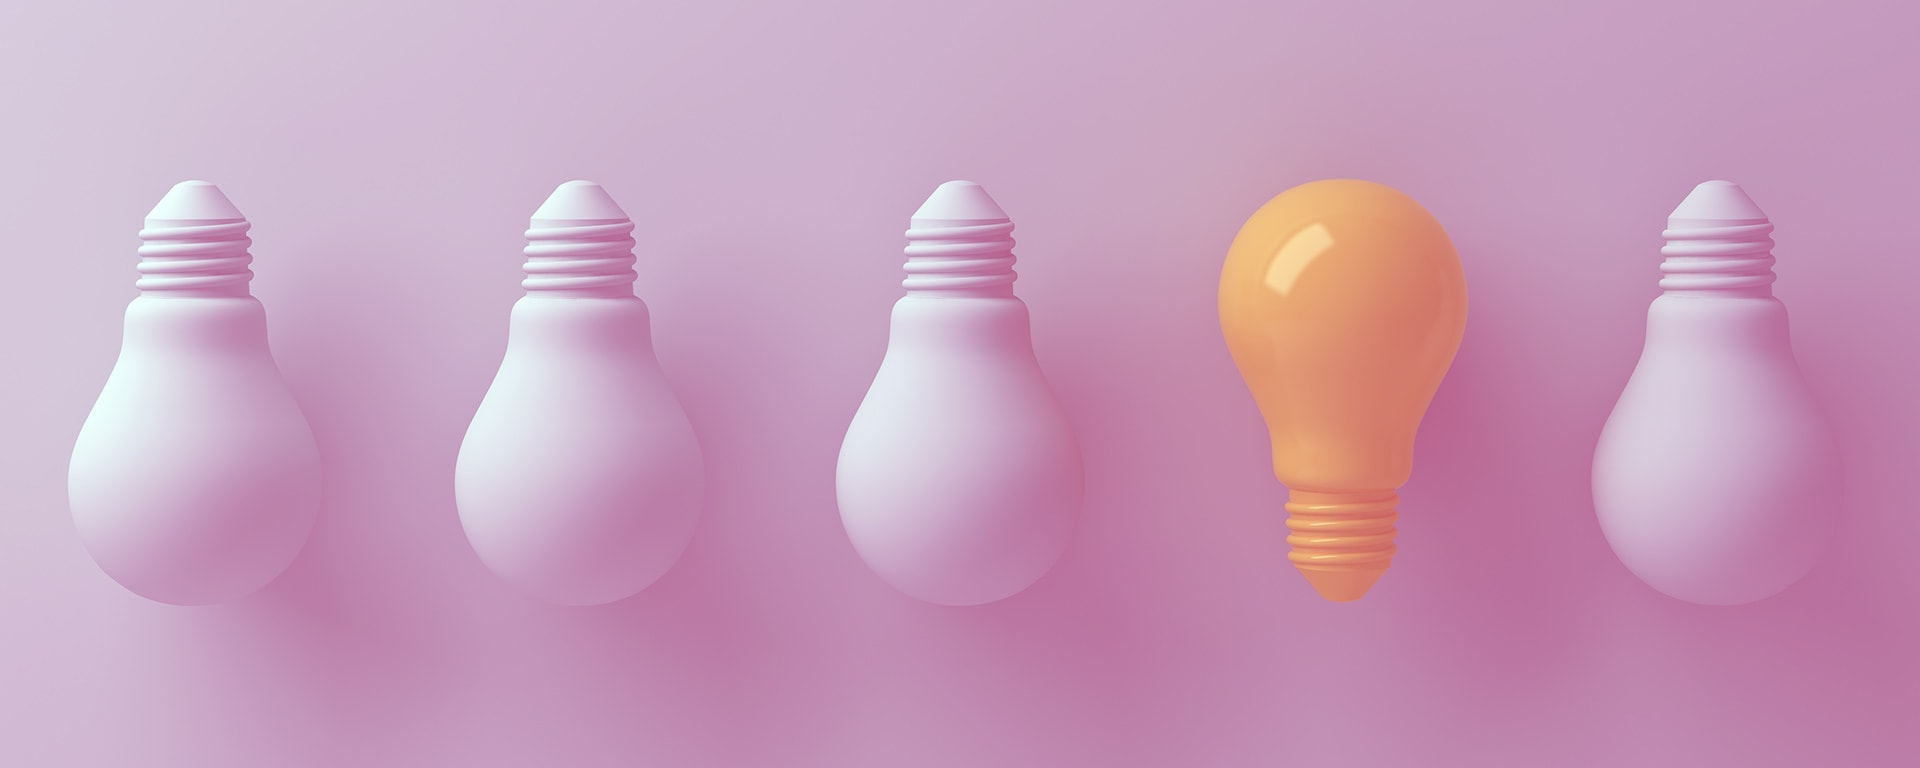 lightbulb header image for Common Arguments Against Process Management blog